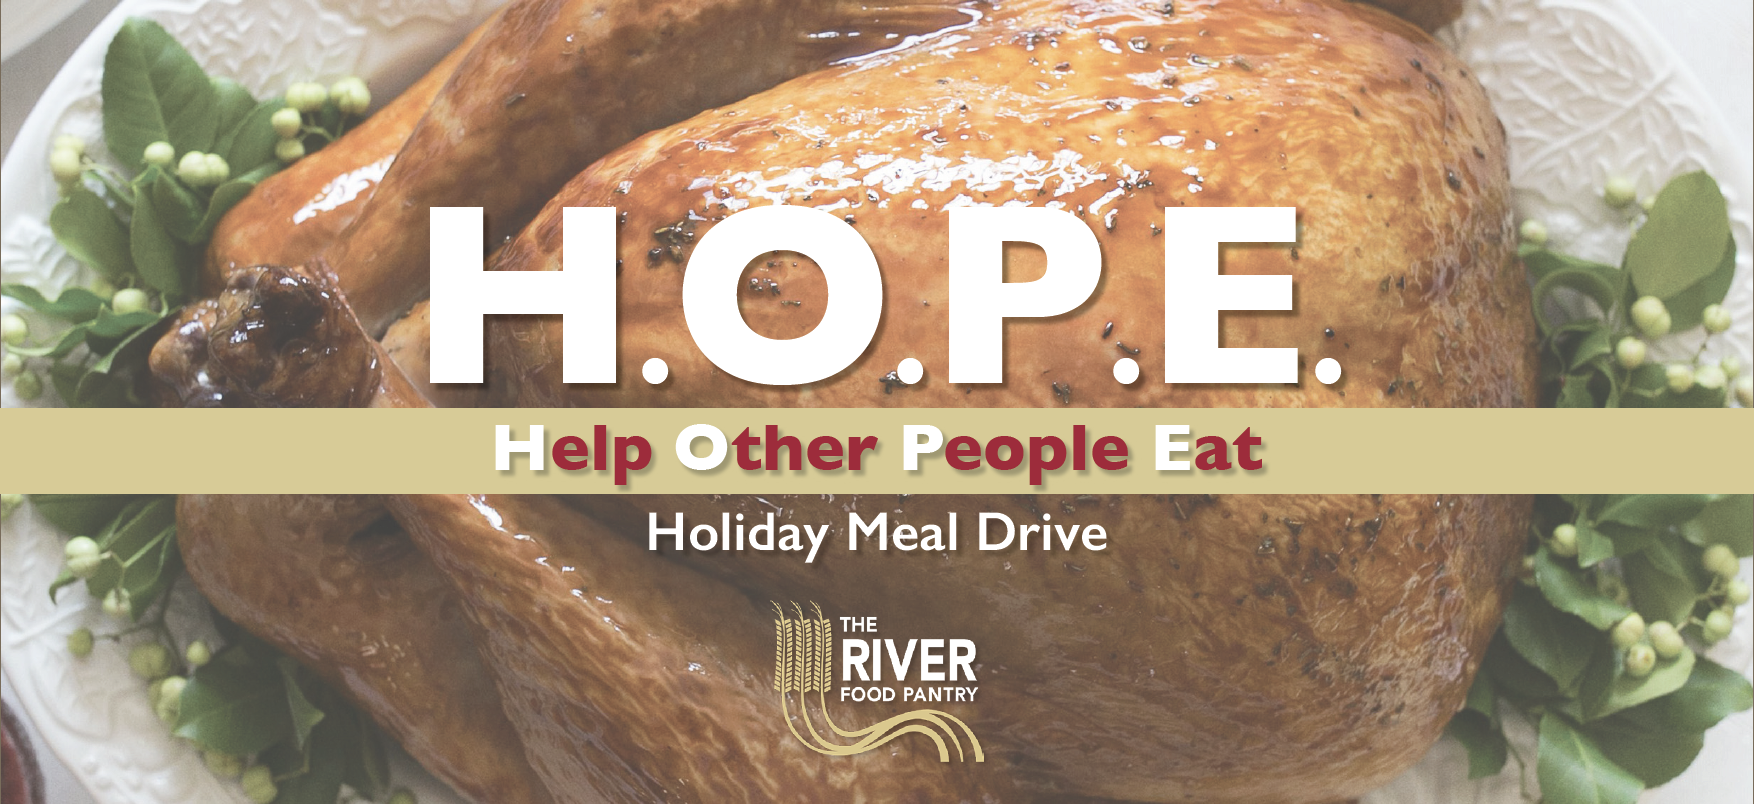 Help Other People Eat During the Holidays & COVID-19 image